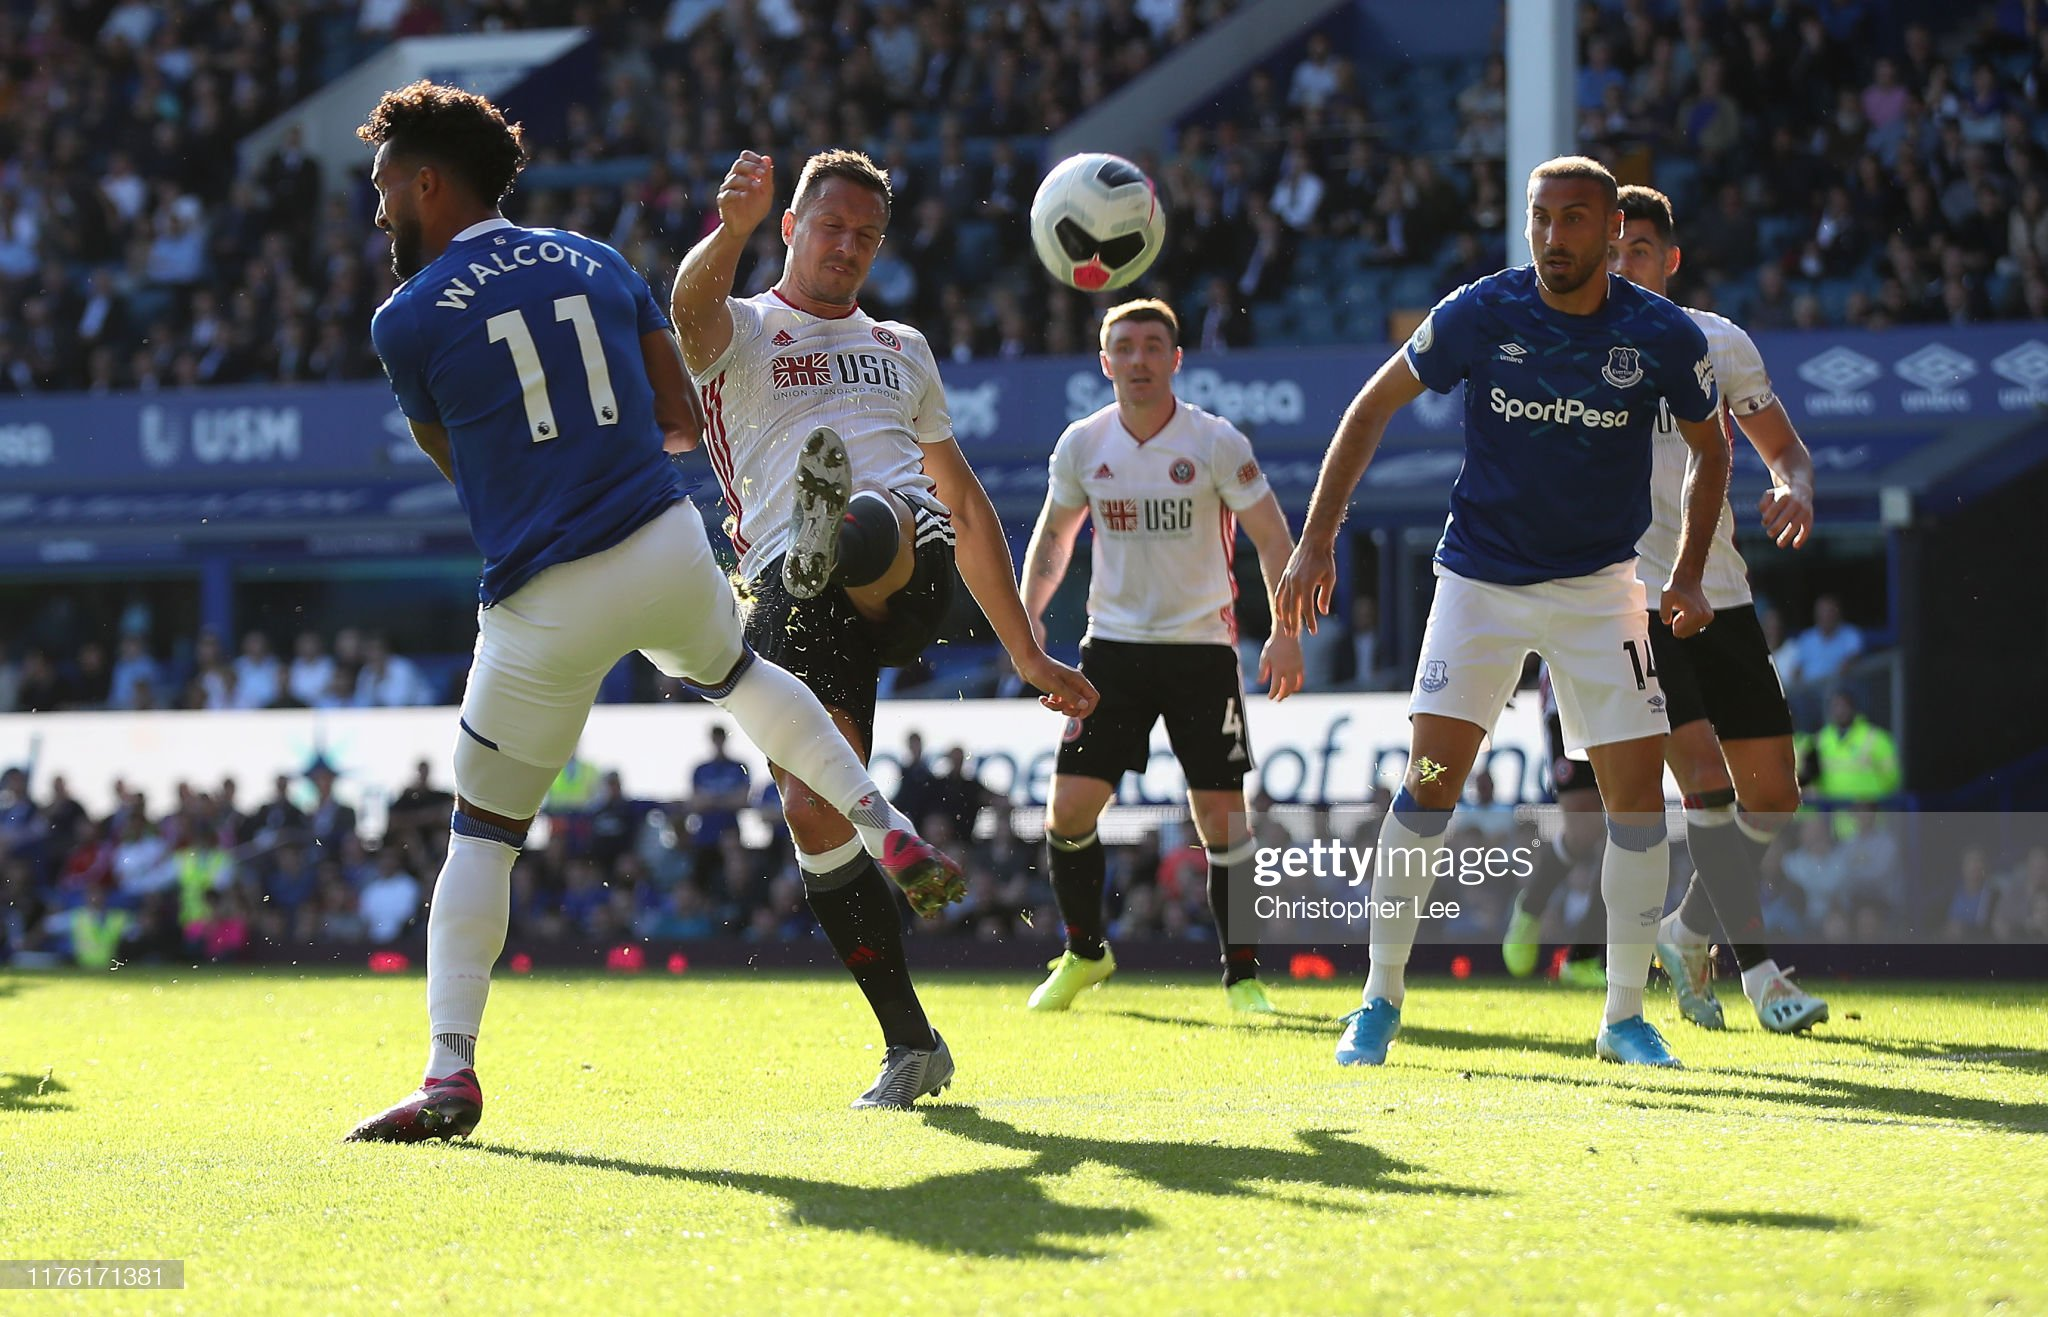 Sheffield United vs Everton Preview, prediction and odds